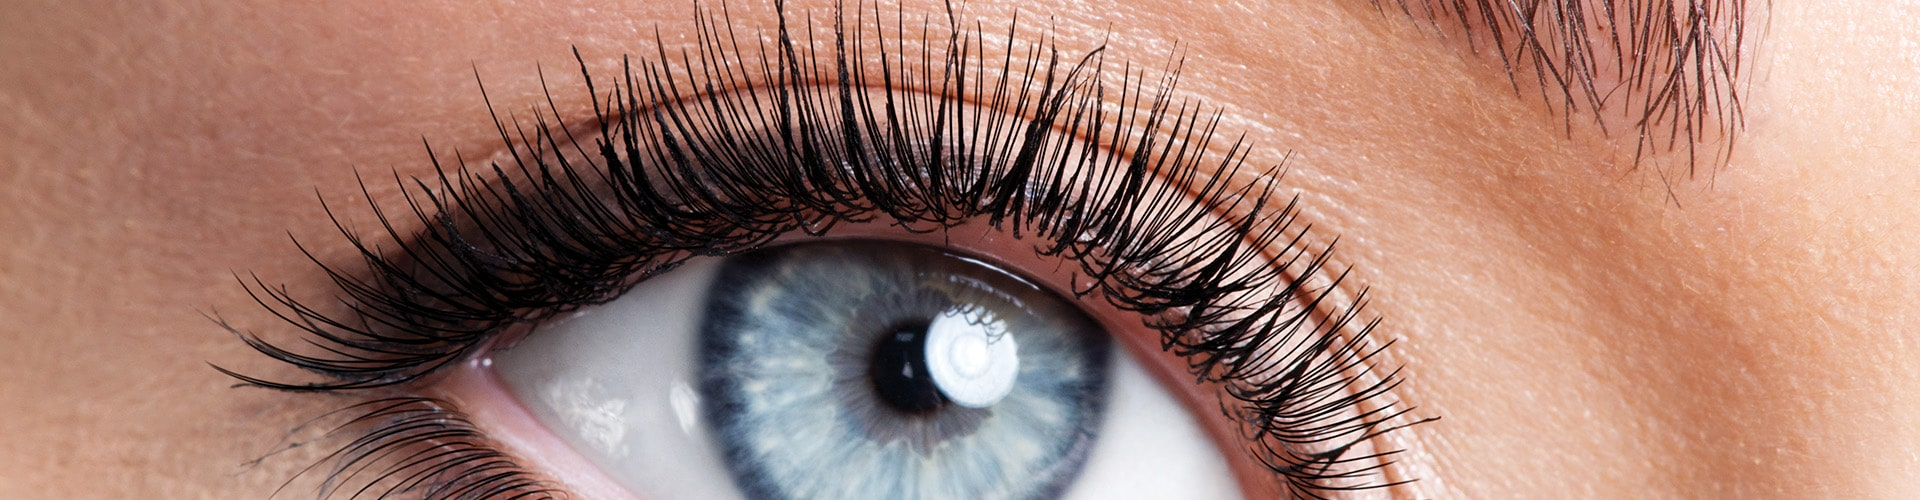 Eyebrow Eyelash The Retreat Beauty Salon In Brackley